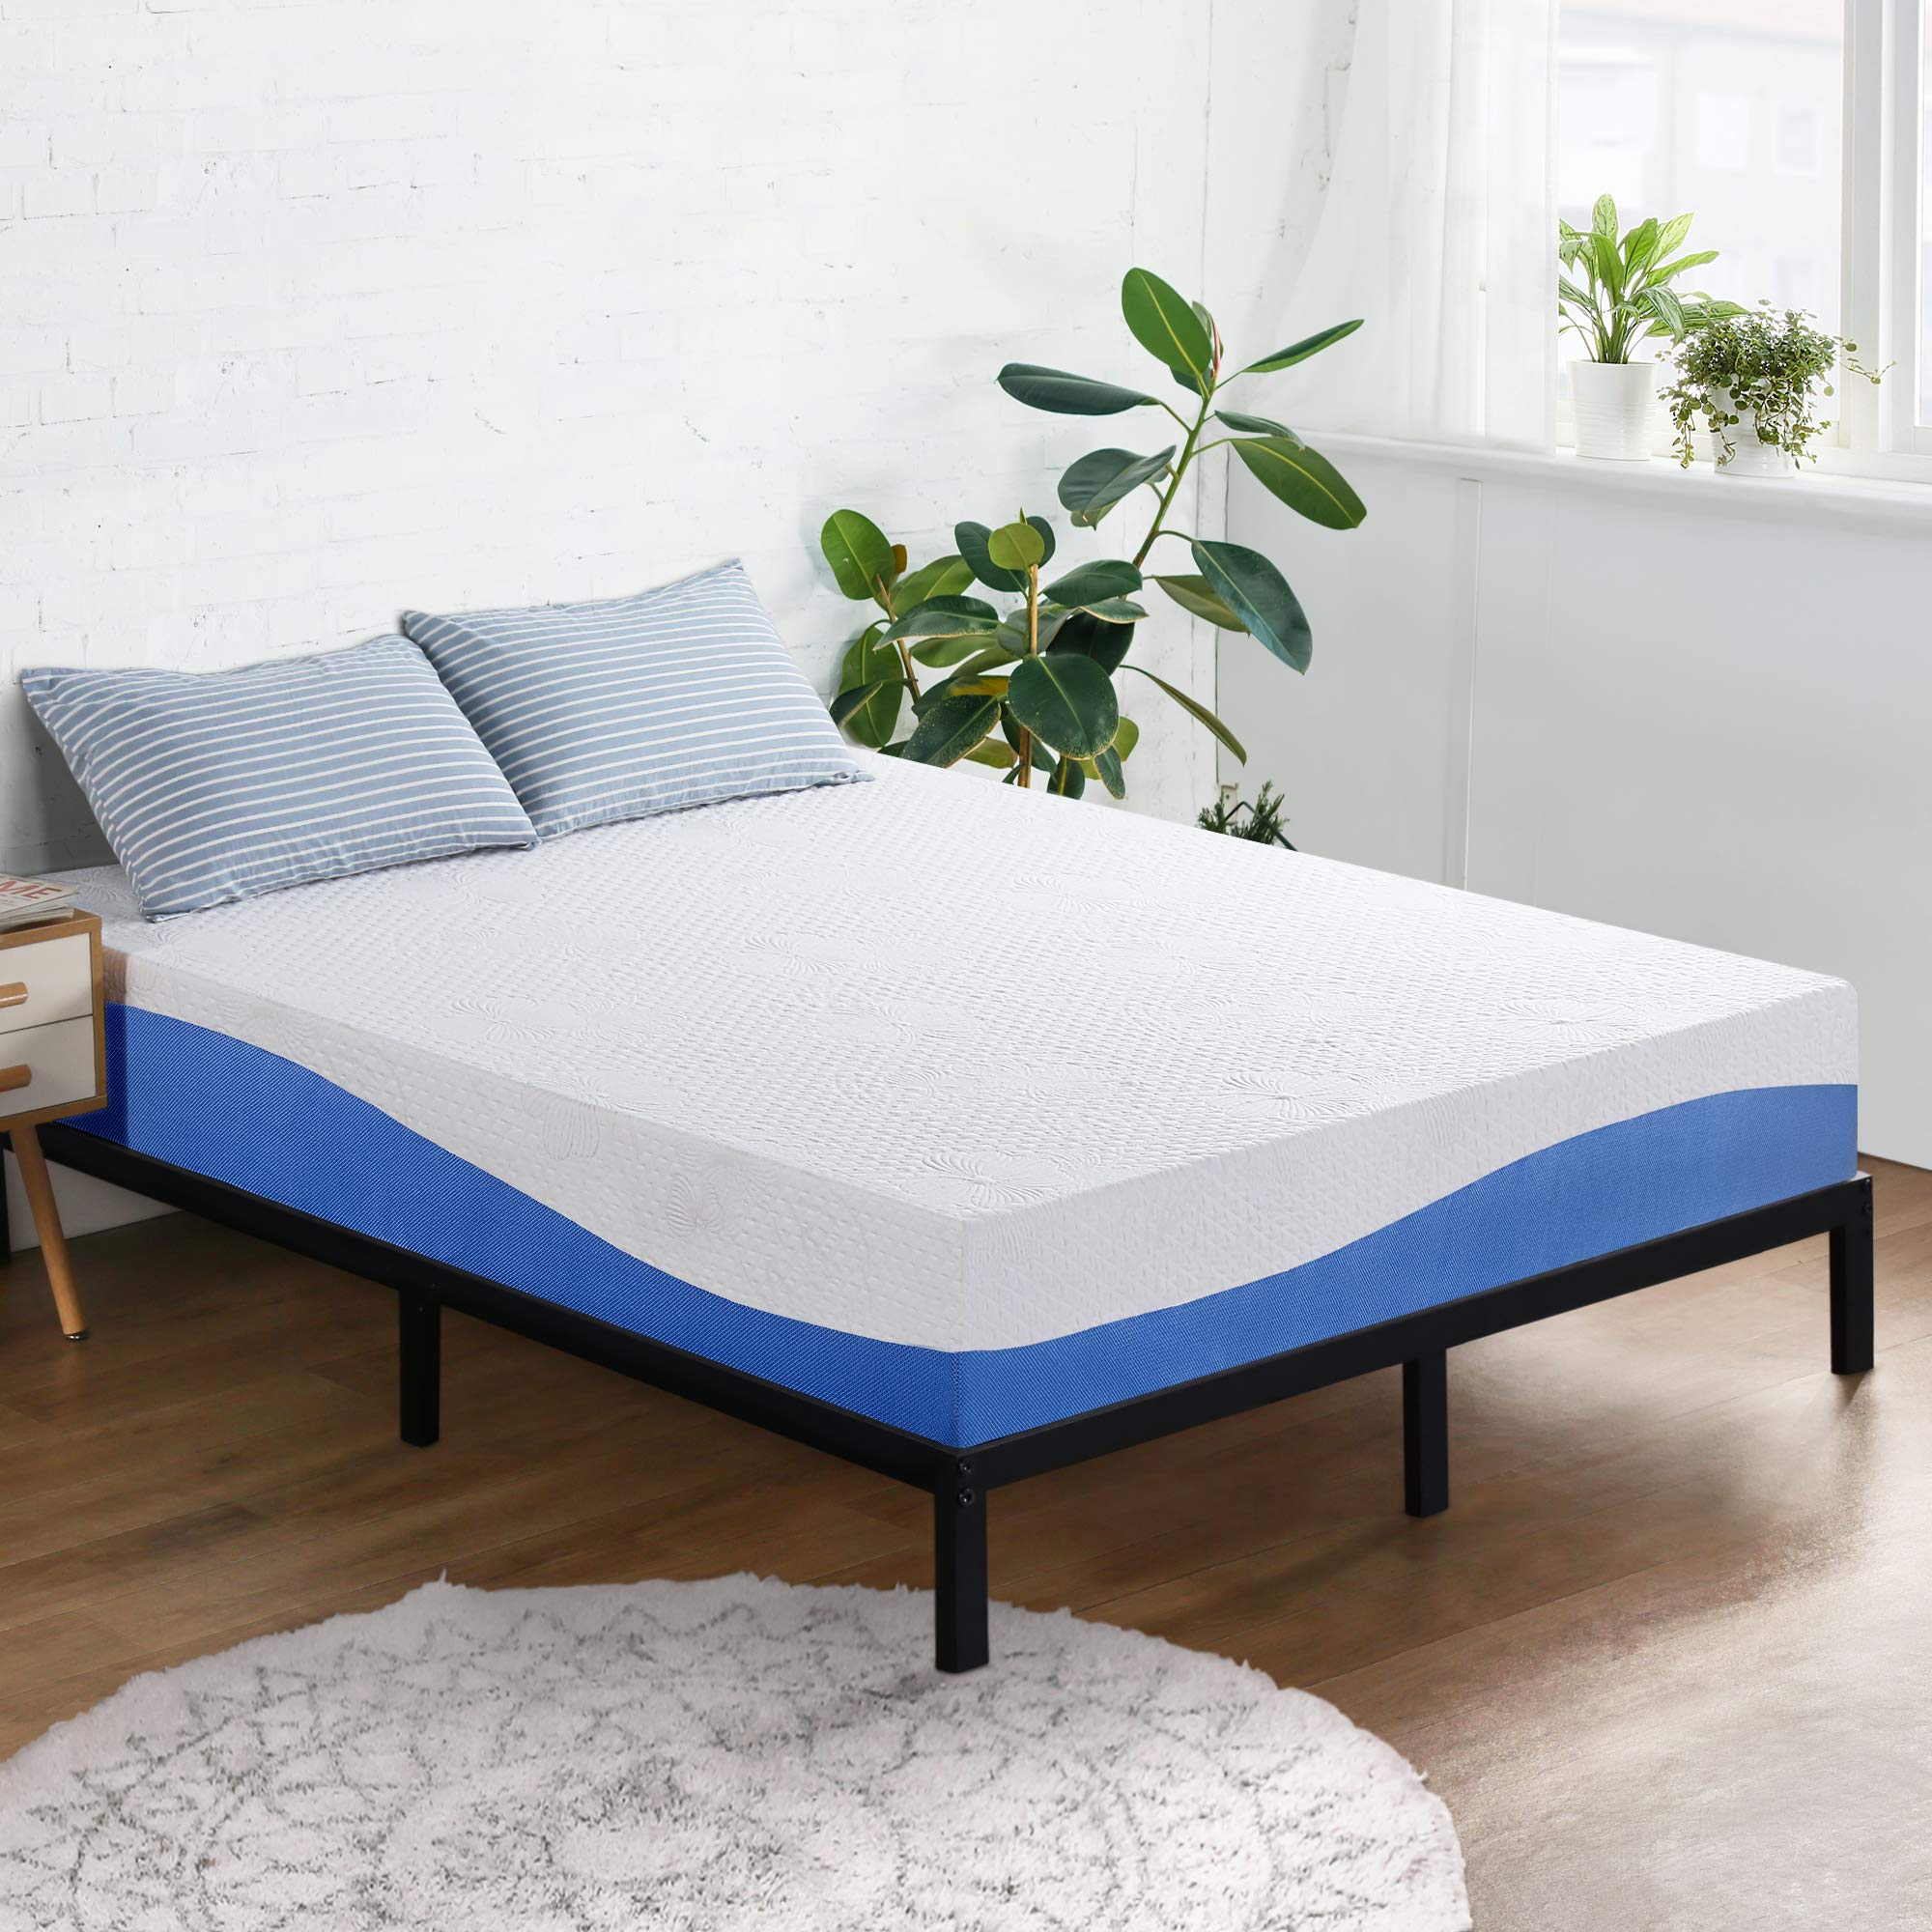 10 Inch Gel Infused Layer Top Memory Foam Mattress